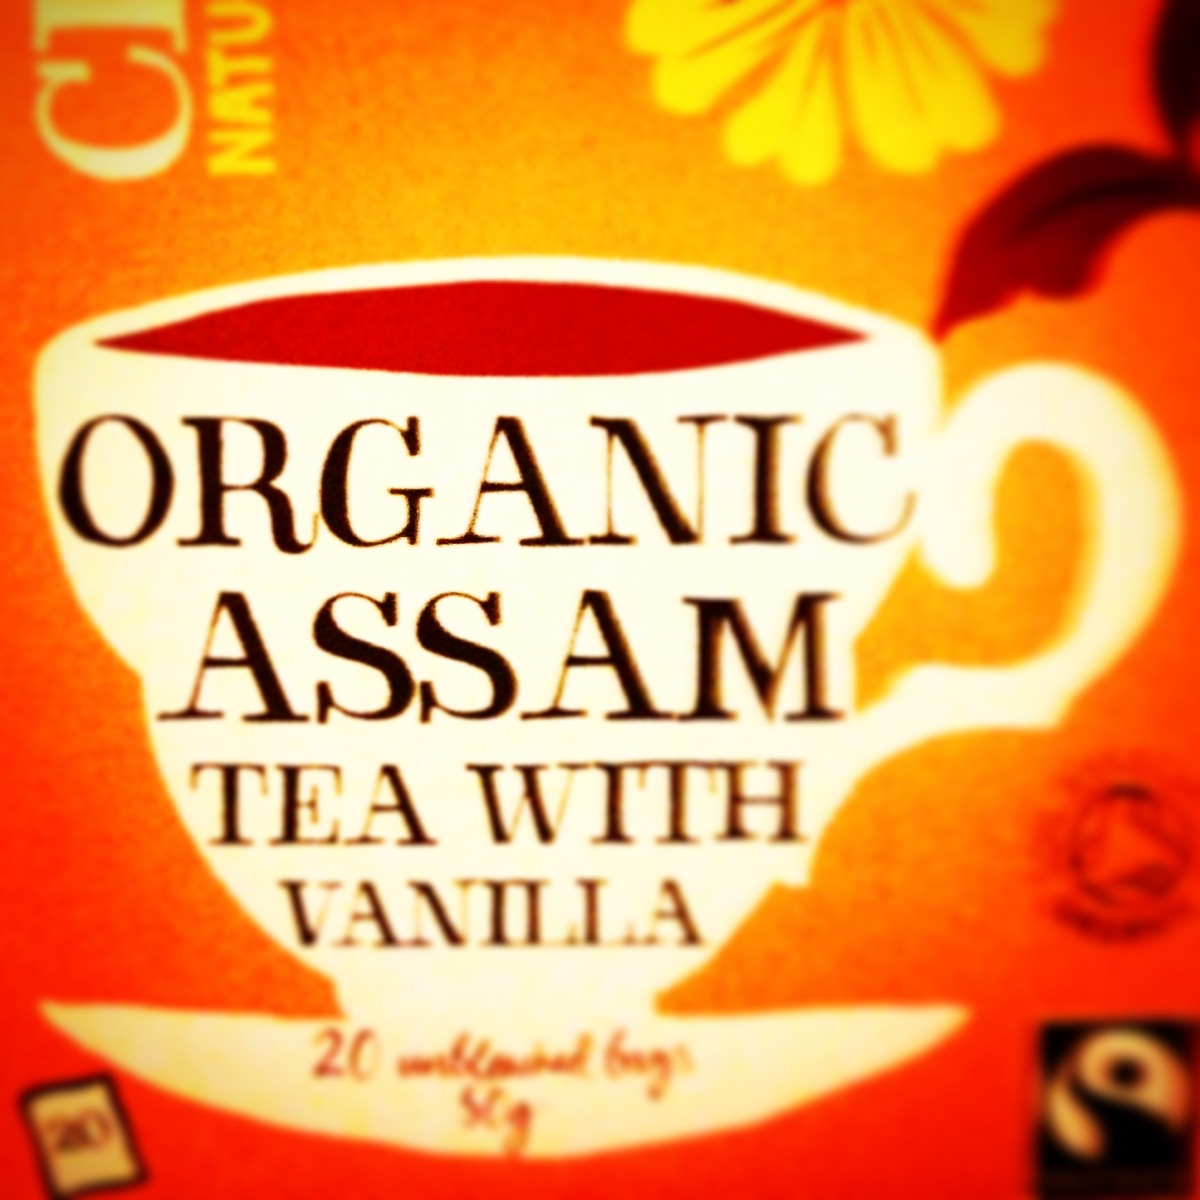 In Praise of Clipper's Assam Tea with Vanilla (it's bloody good)!